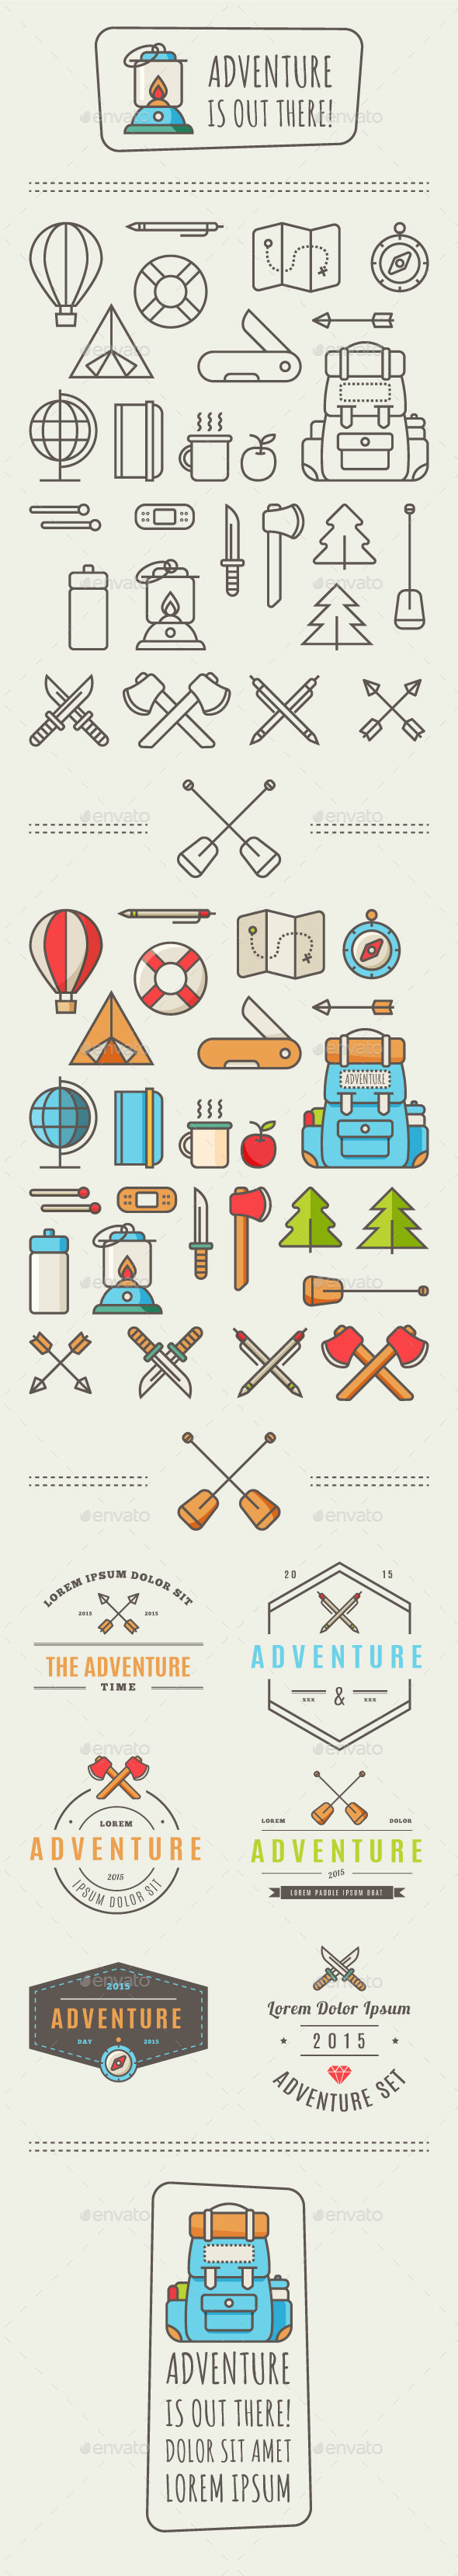 Adventure icons fonts logos icons pinterest vector shapes buy adventure icons by fet on graphicriver icons for adventure in the style of flat design for poster greeting card flyer or what you need m4hsunfo